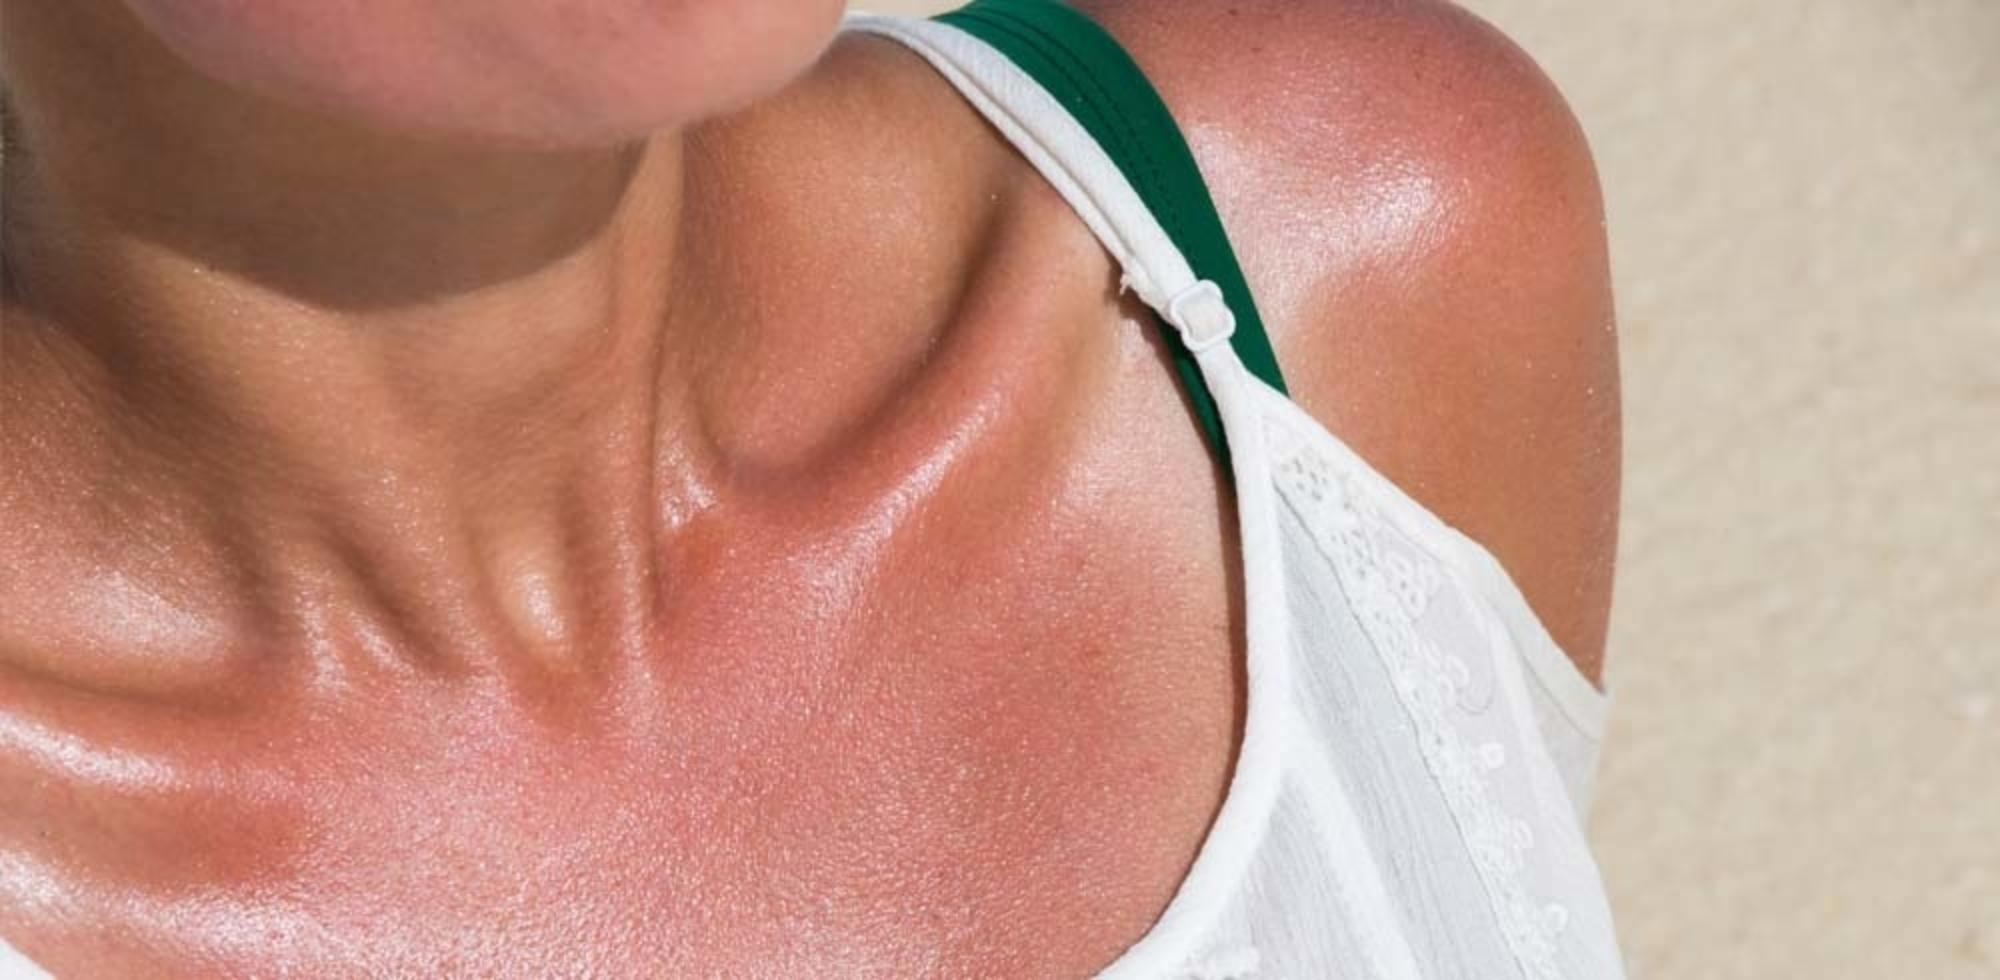 How many sunburns does it take to get skin cancer? - MoleMap